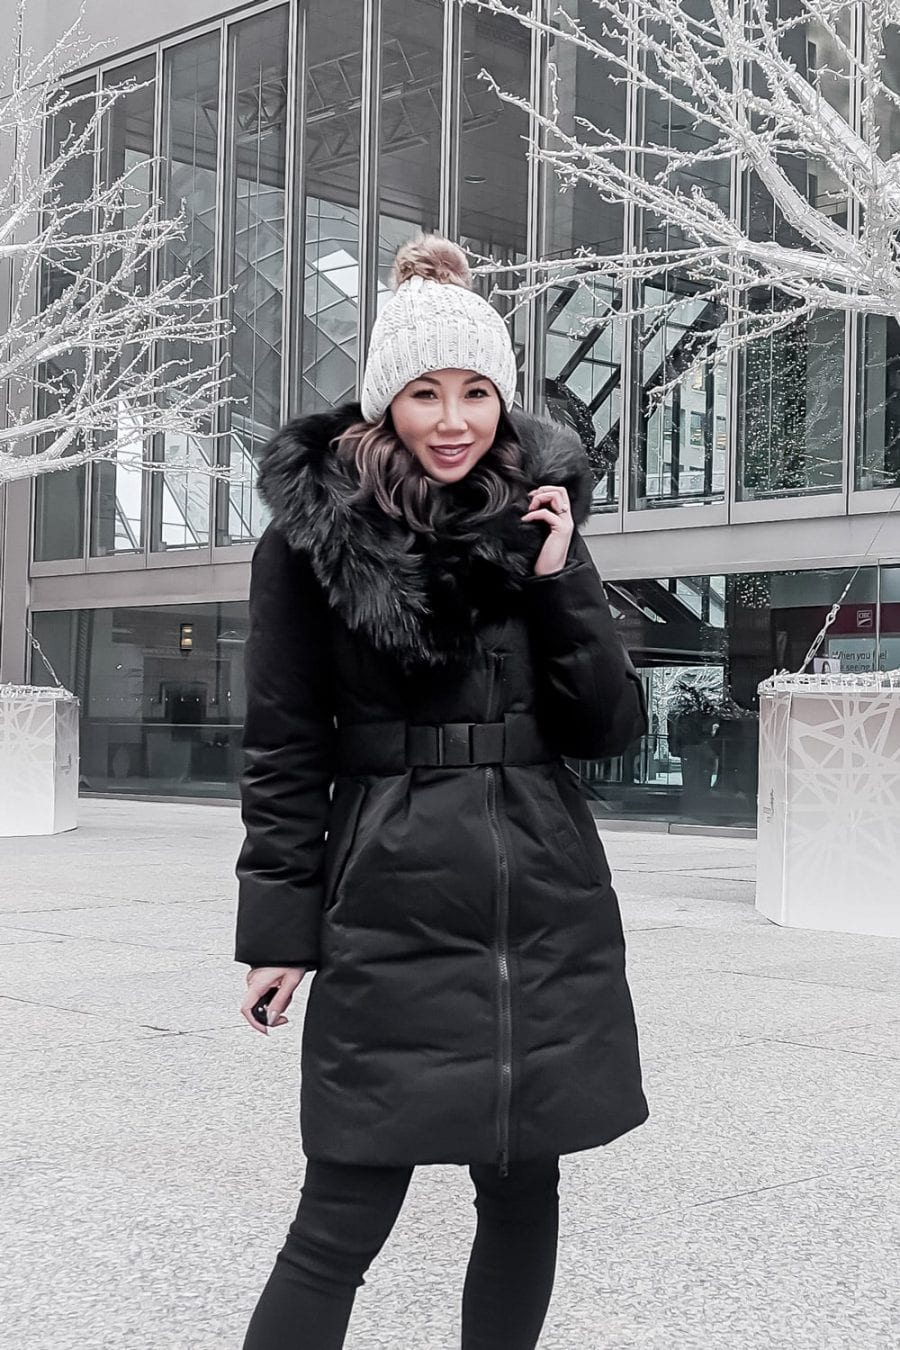 Winter Coat OOTD - Black parka, furry boots and beanie